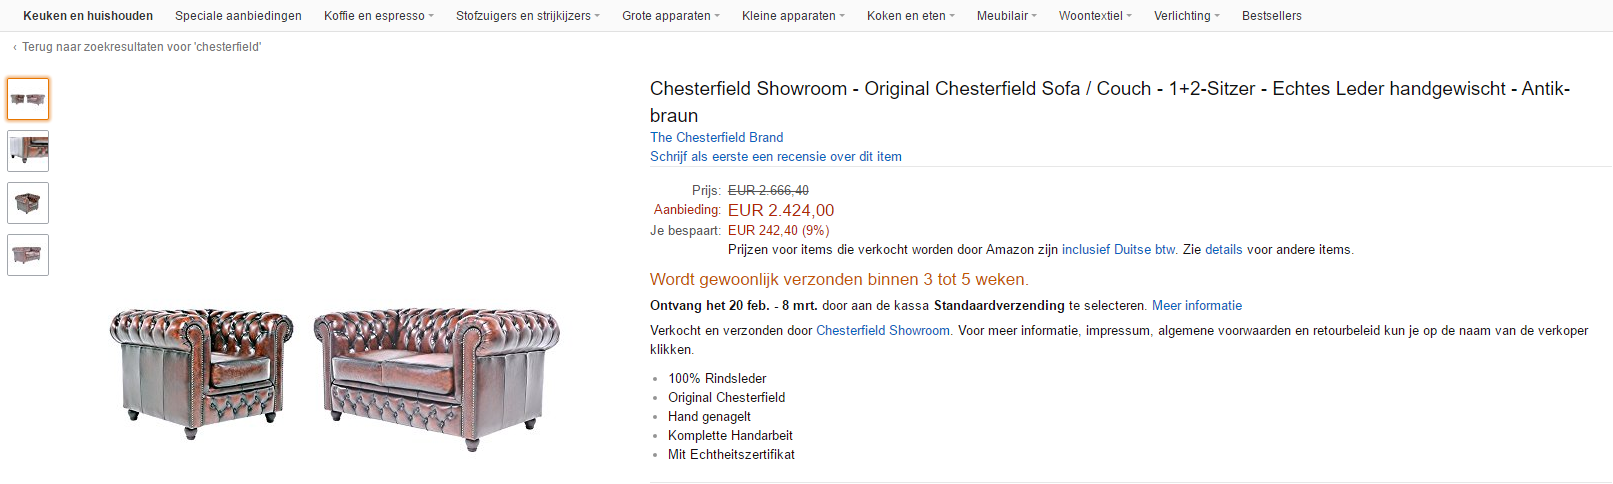 Amazon.de Chesterfield Showroom | EasyAds